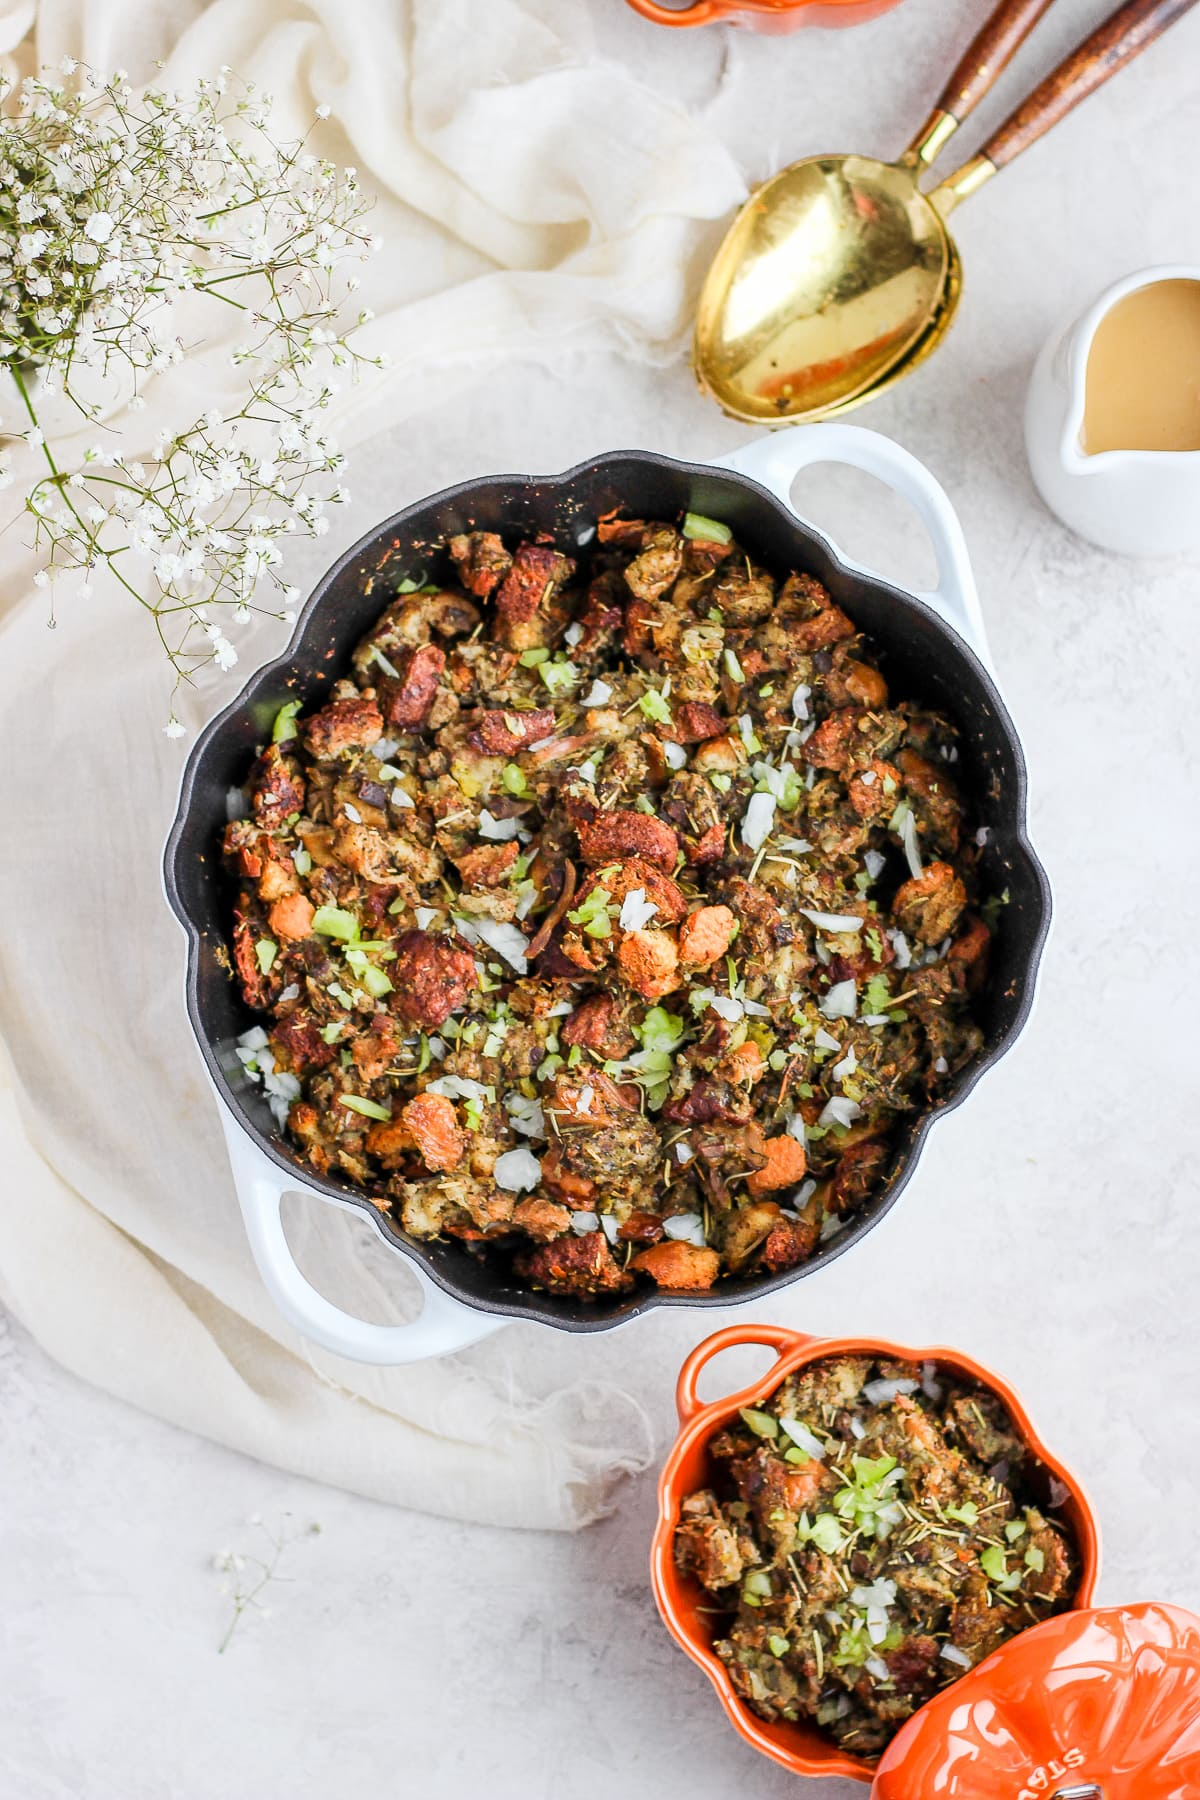 How to Make Classic Giblet Stuffing - how to make this classic Thanksgiving stuffing!! Dairy-free and gluten-free friendly! #thanksgiving #stuffing #dairyfree #glutenfree